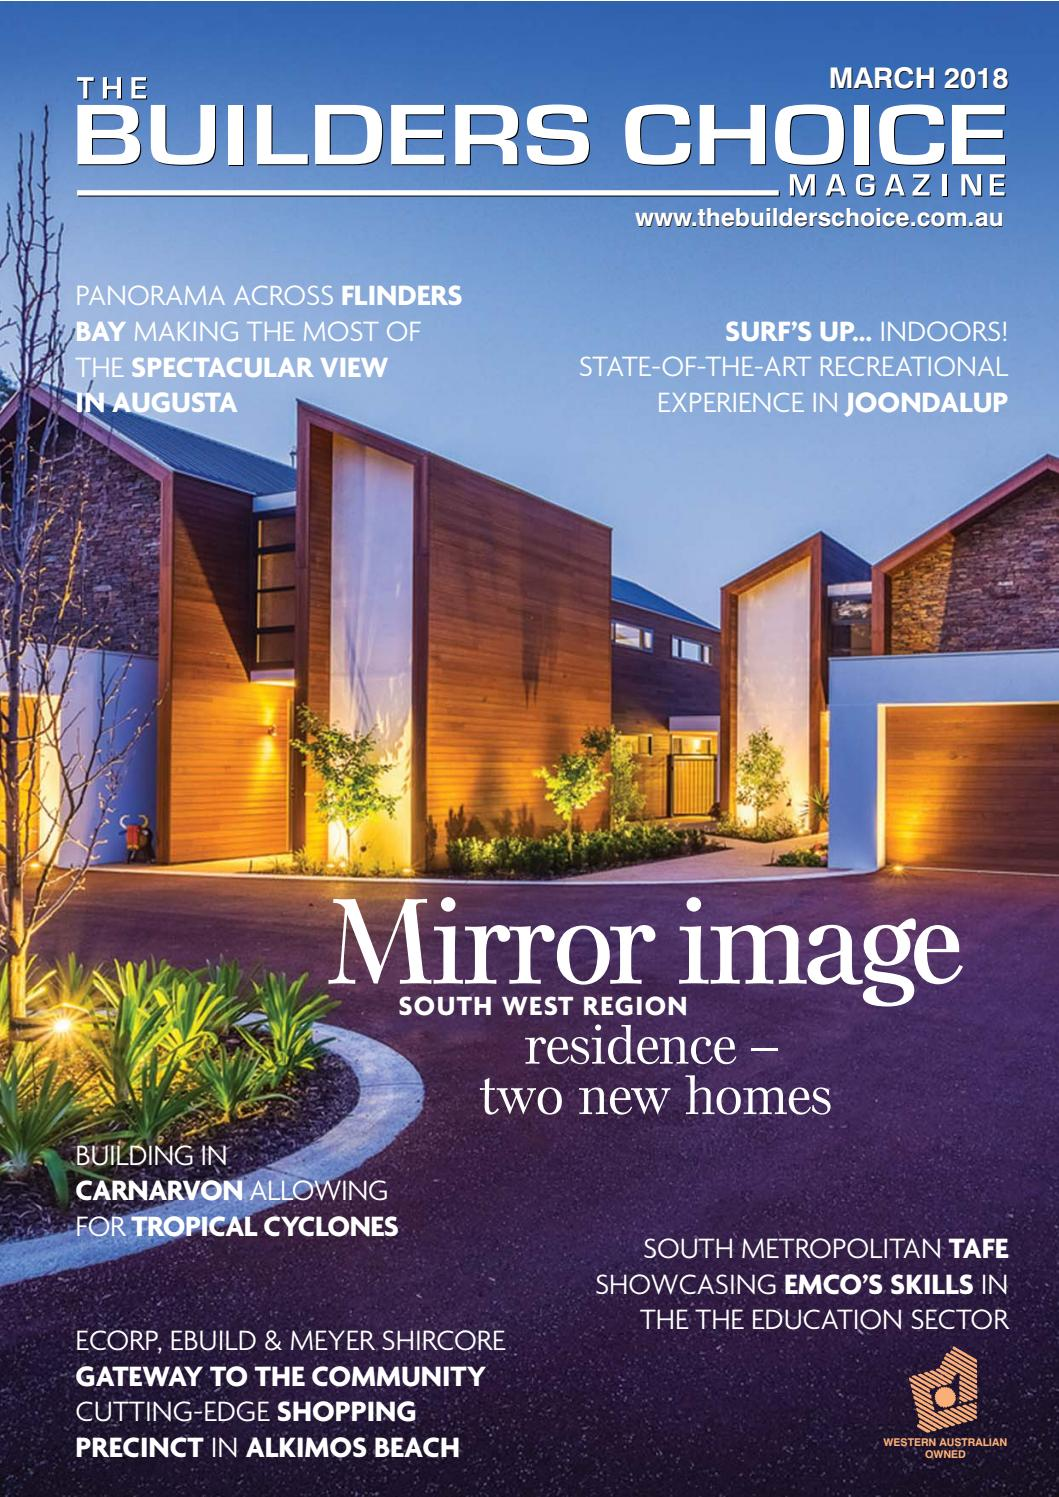 Builders choice magazine march 2018 by The Builders Choice